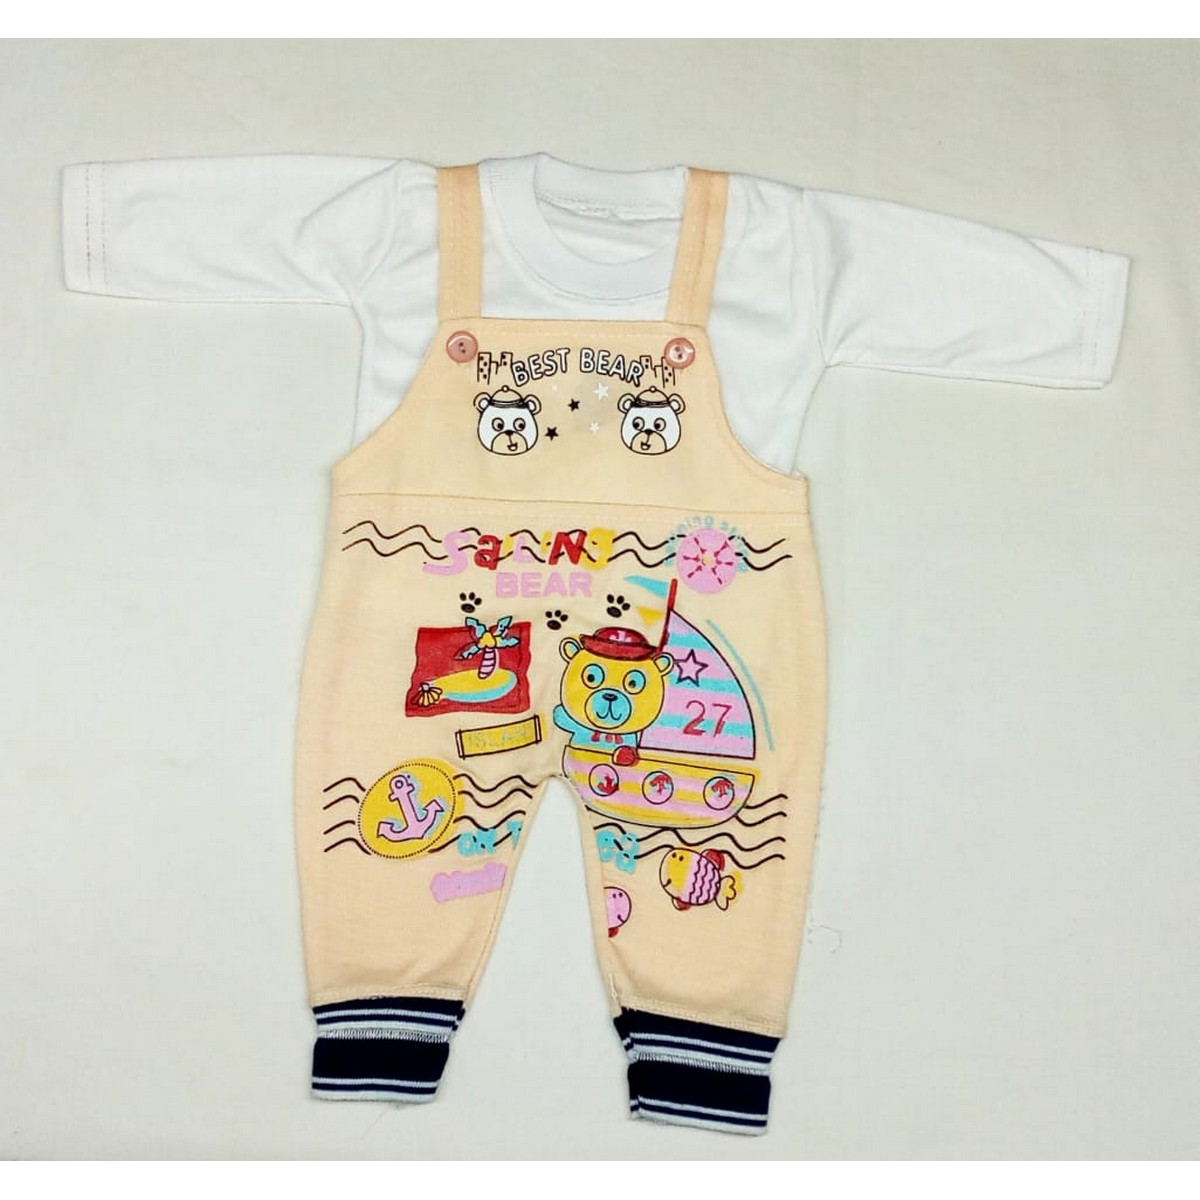 New baby/baba rompers 0-6 Month